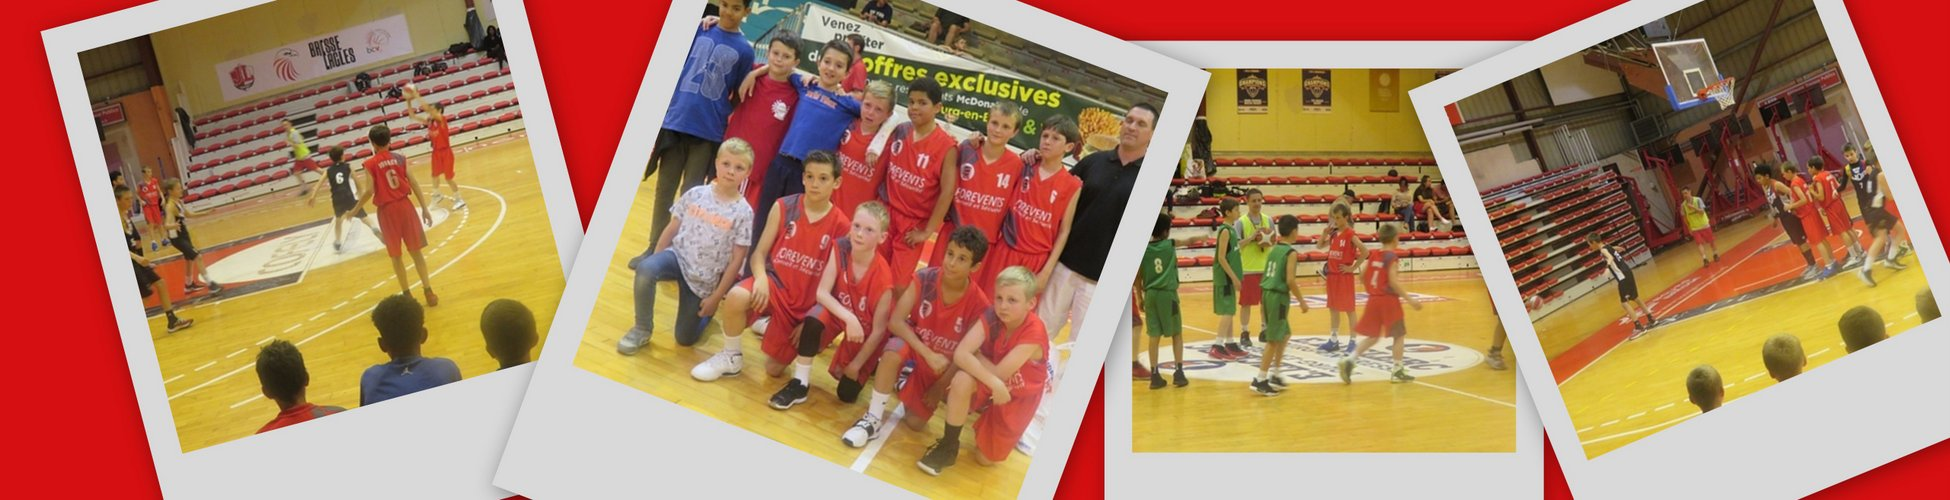 Tournoi Elite Bourg en Bresse